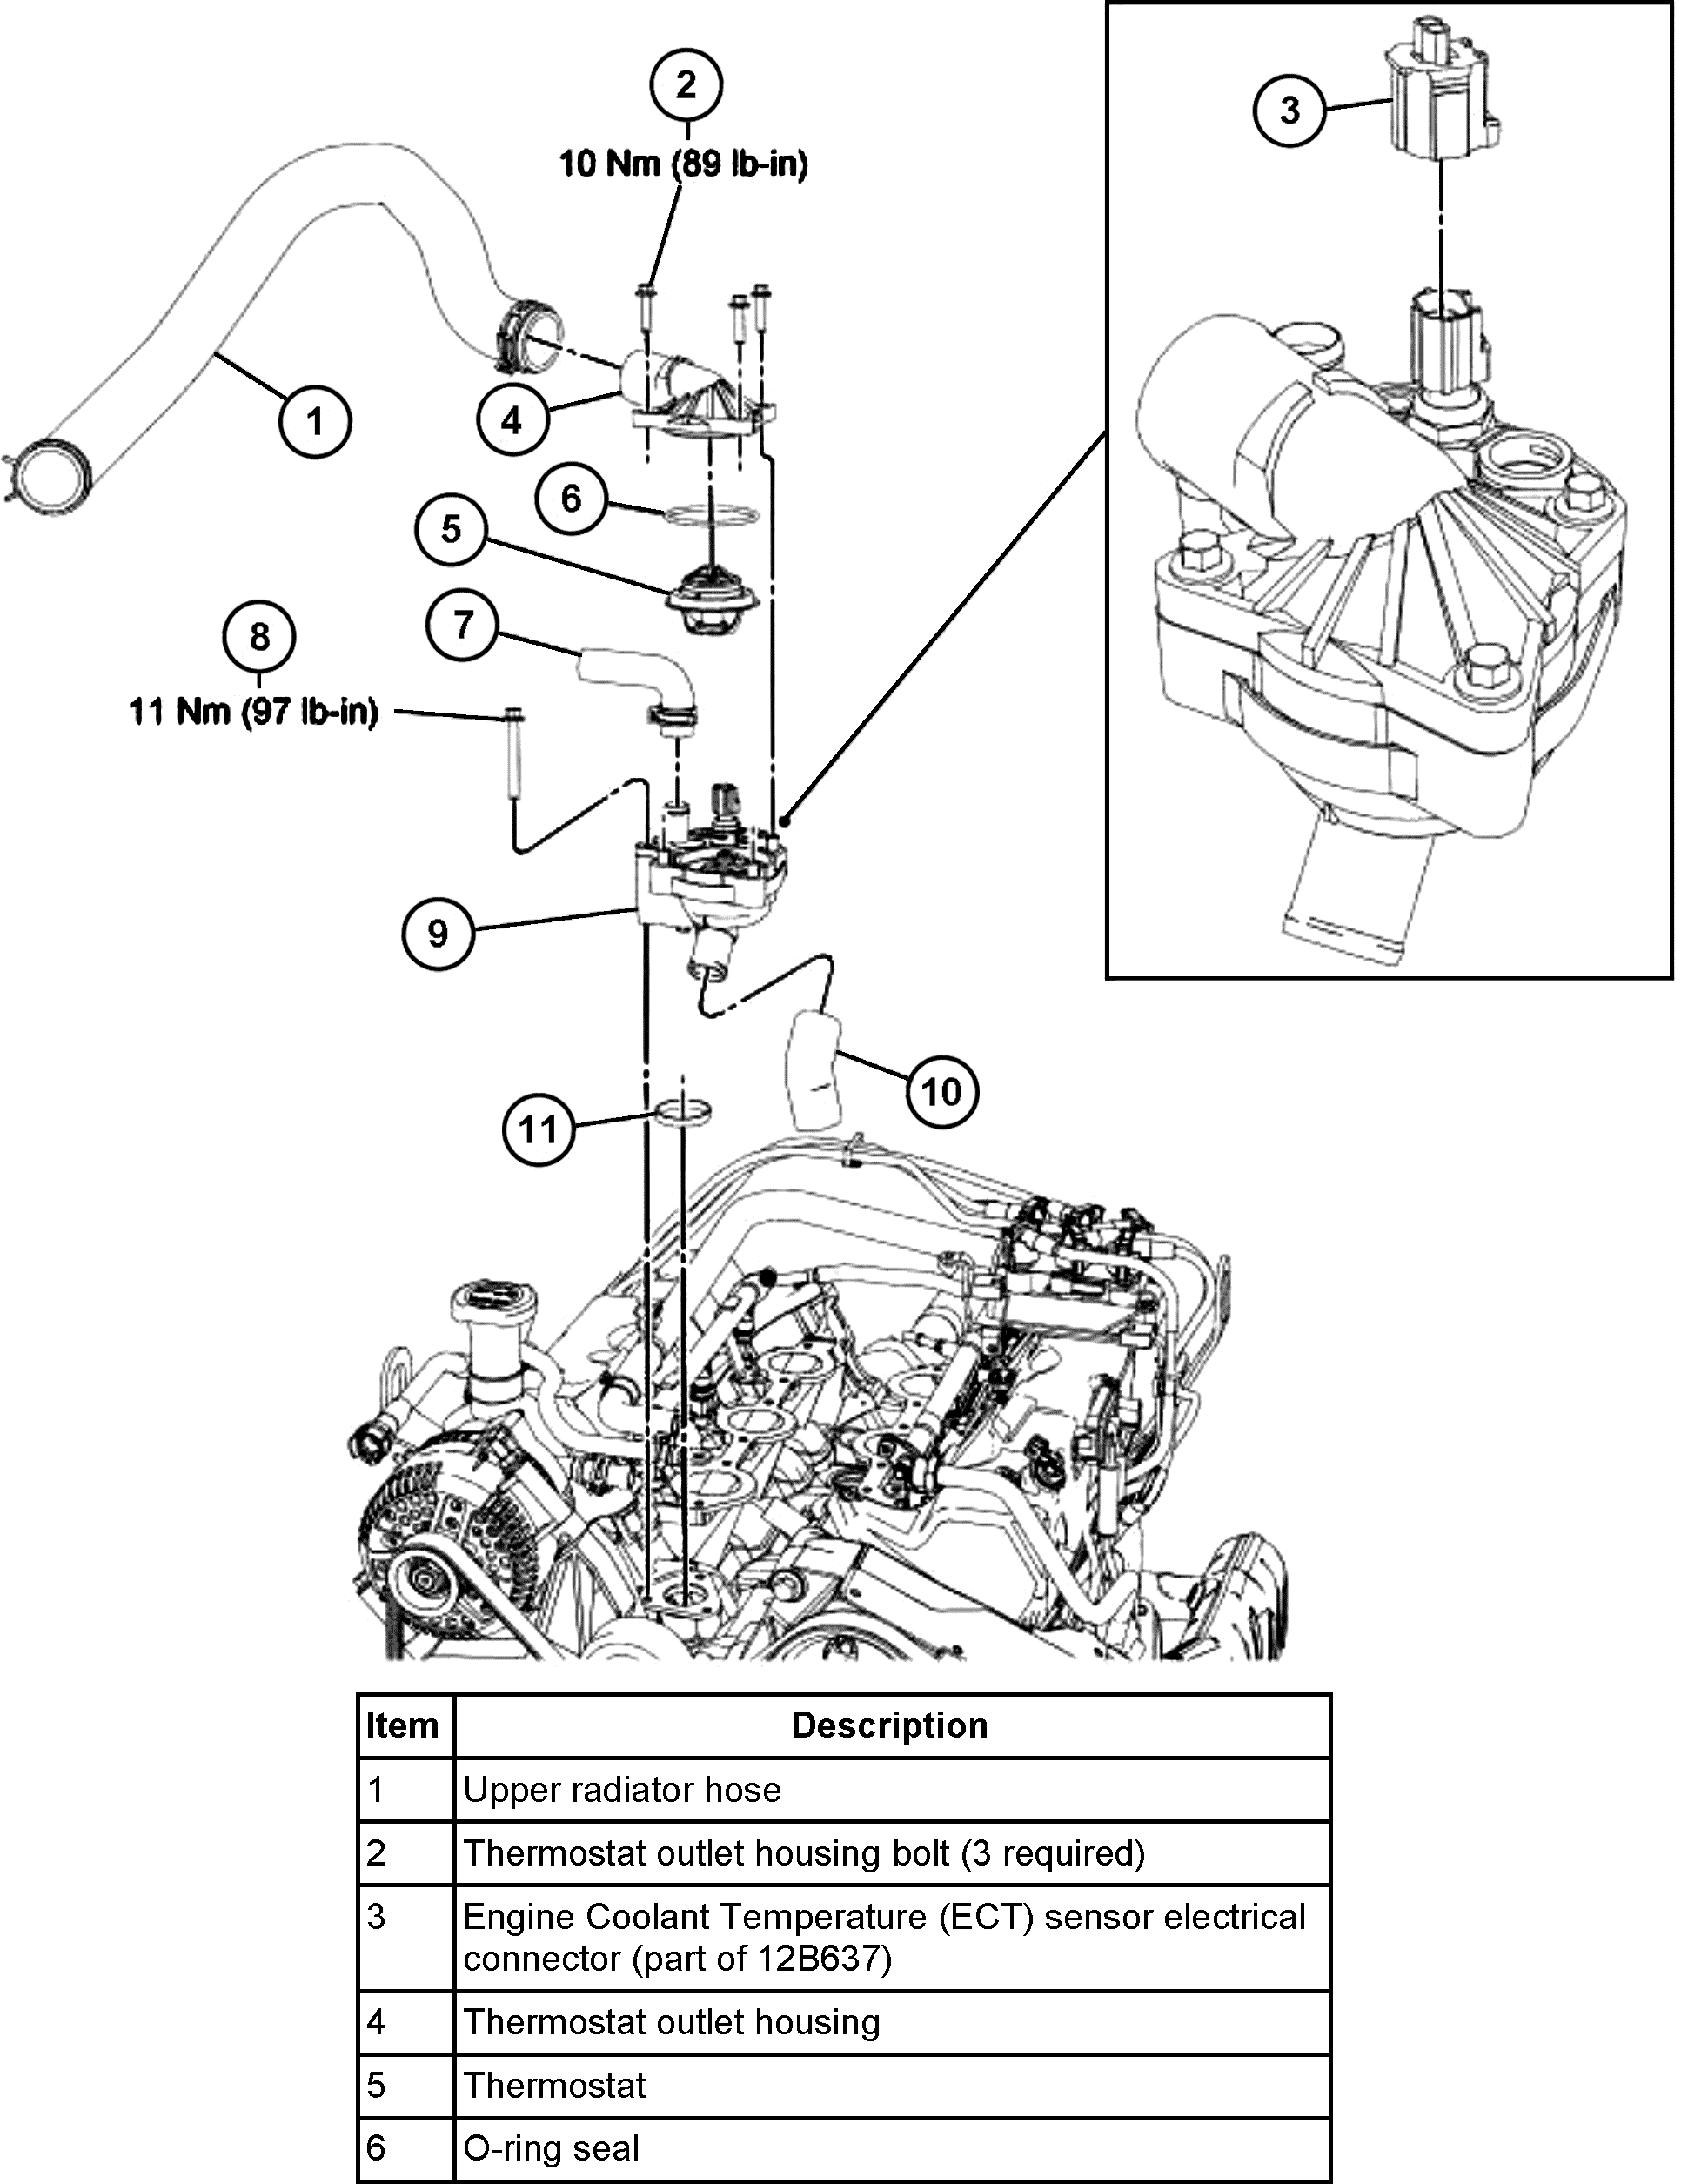 Ford Ranger Thermostat Replacement